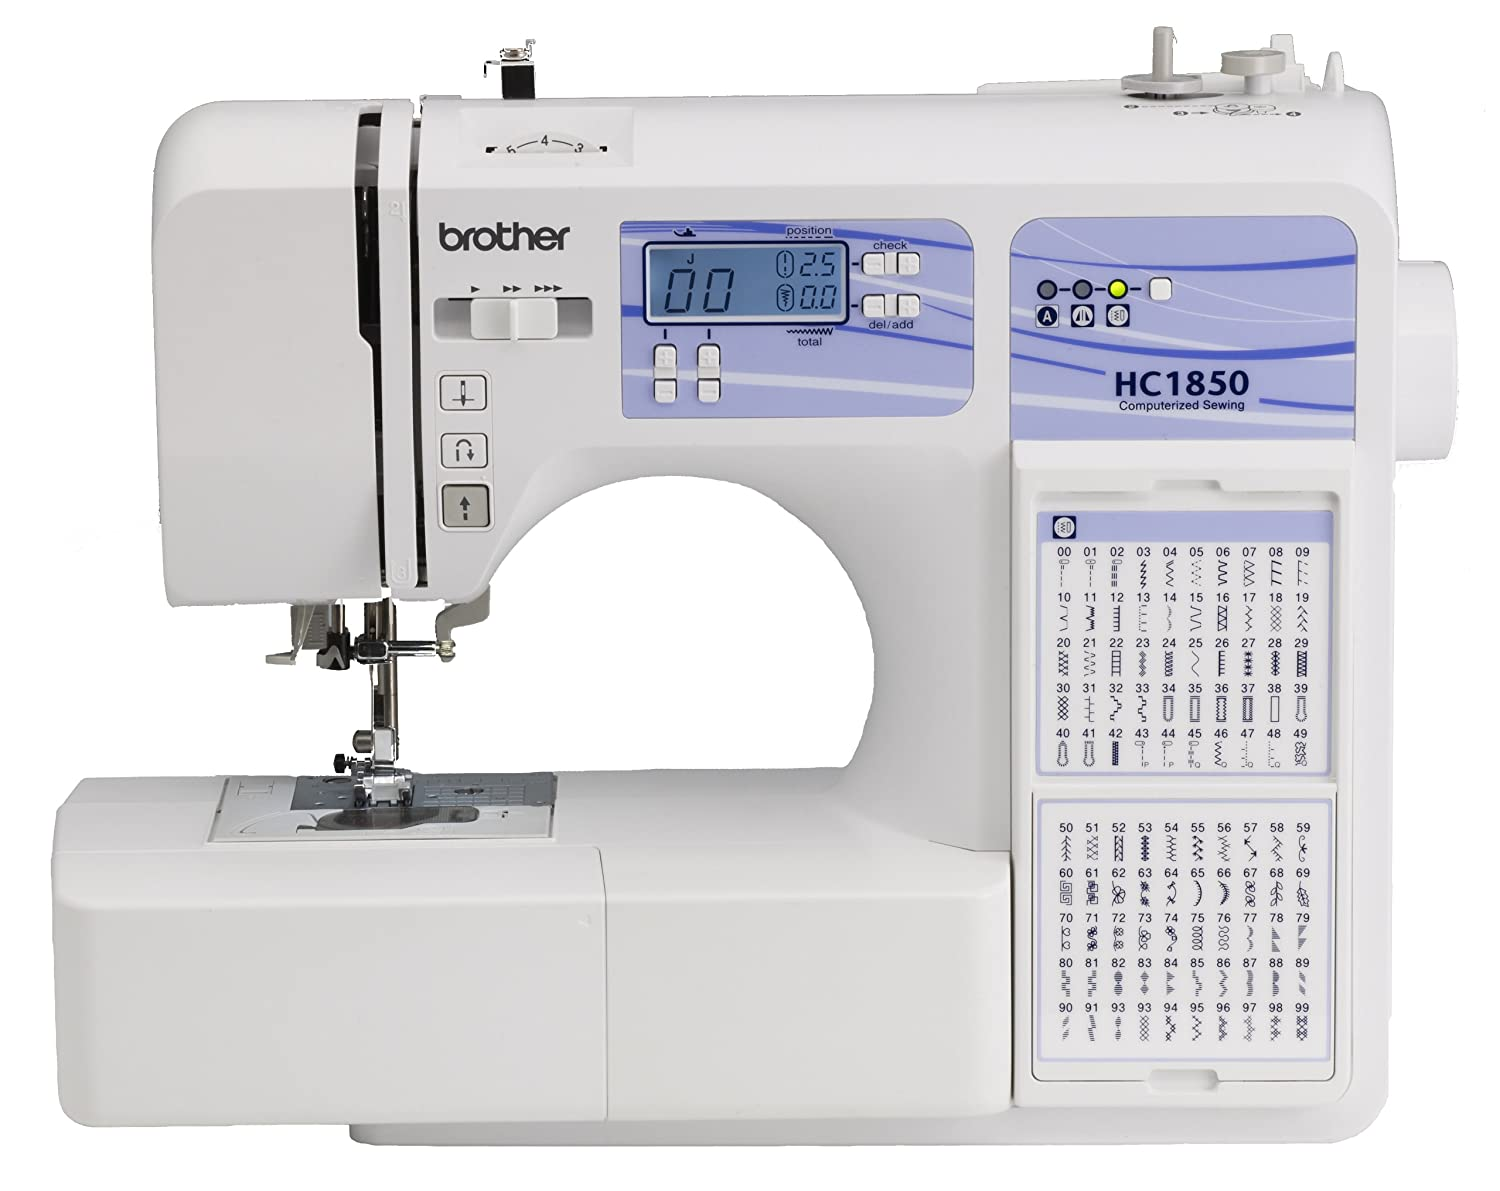 Top 10 Best Computerized Sewing Machines Reviews in 2020 7